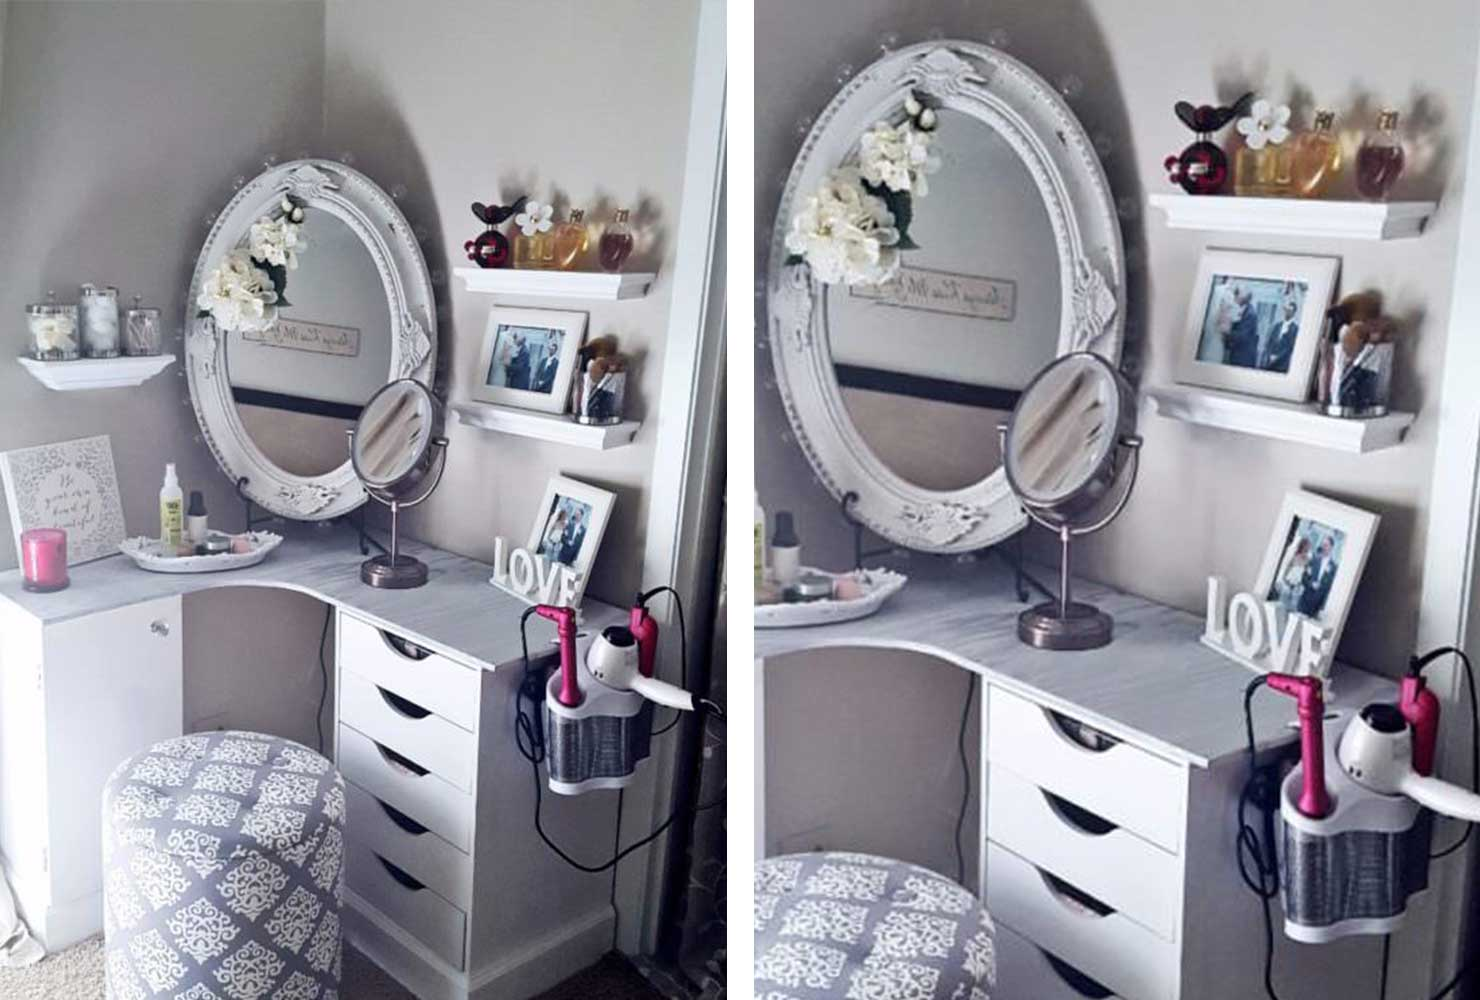 26 DIY Teen Room Decor Ideas to Personalize Any Space ... on Mirrors For Teenage Bedroom  id=29648